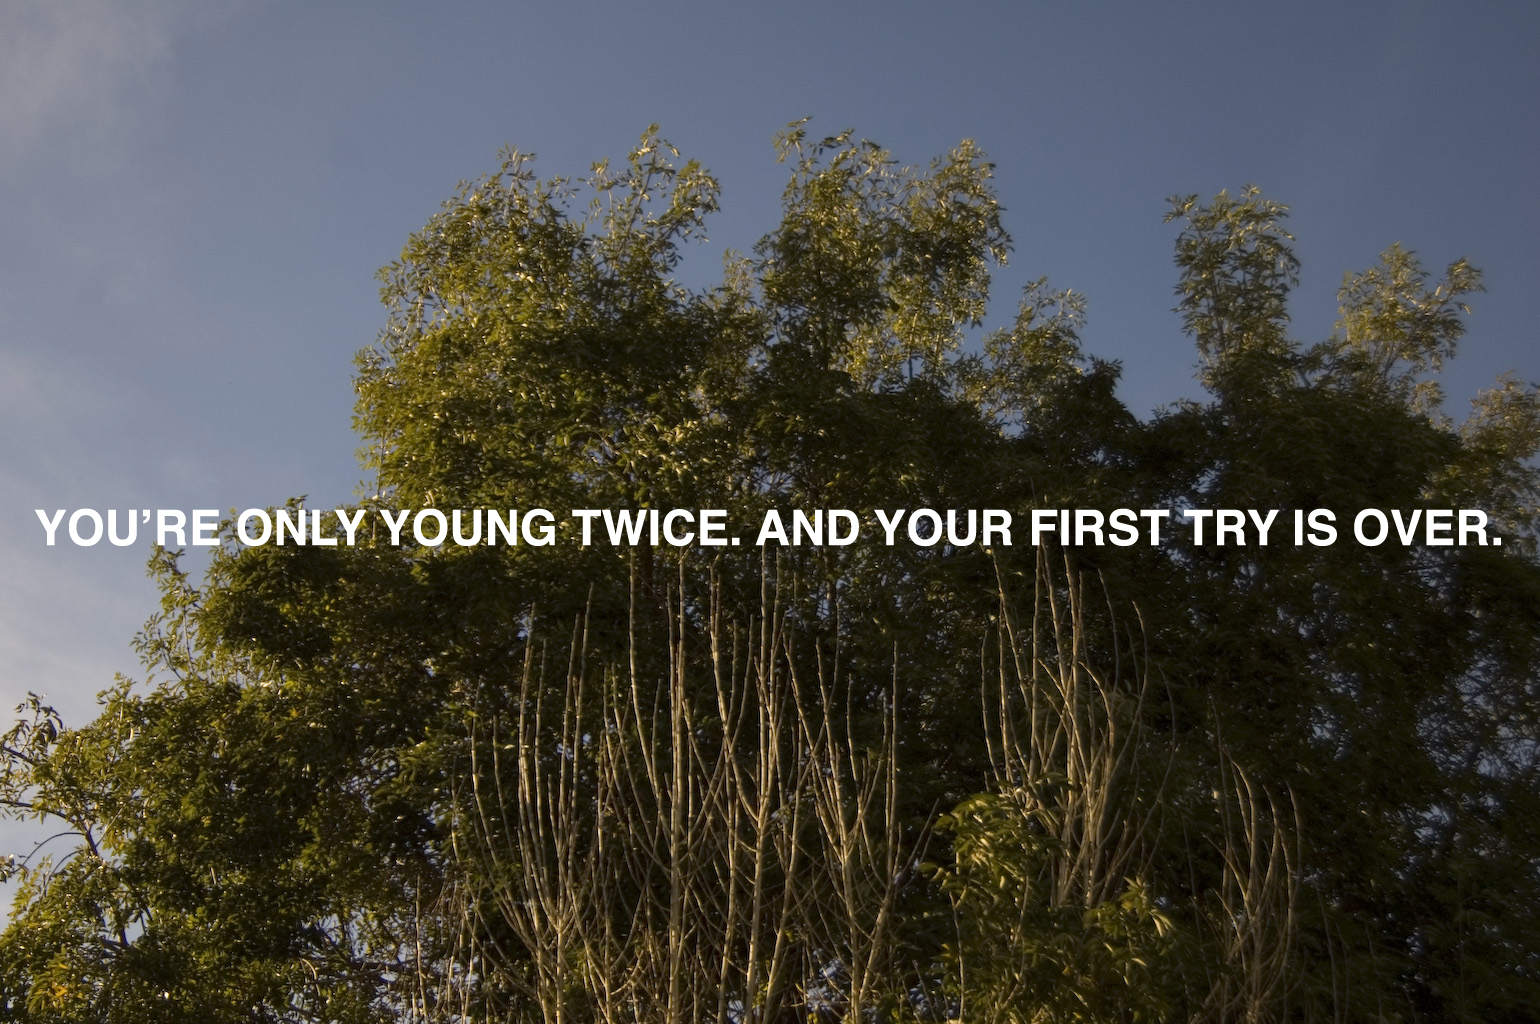 You're Only Young Twice. And Your First Try is Over.